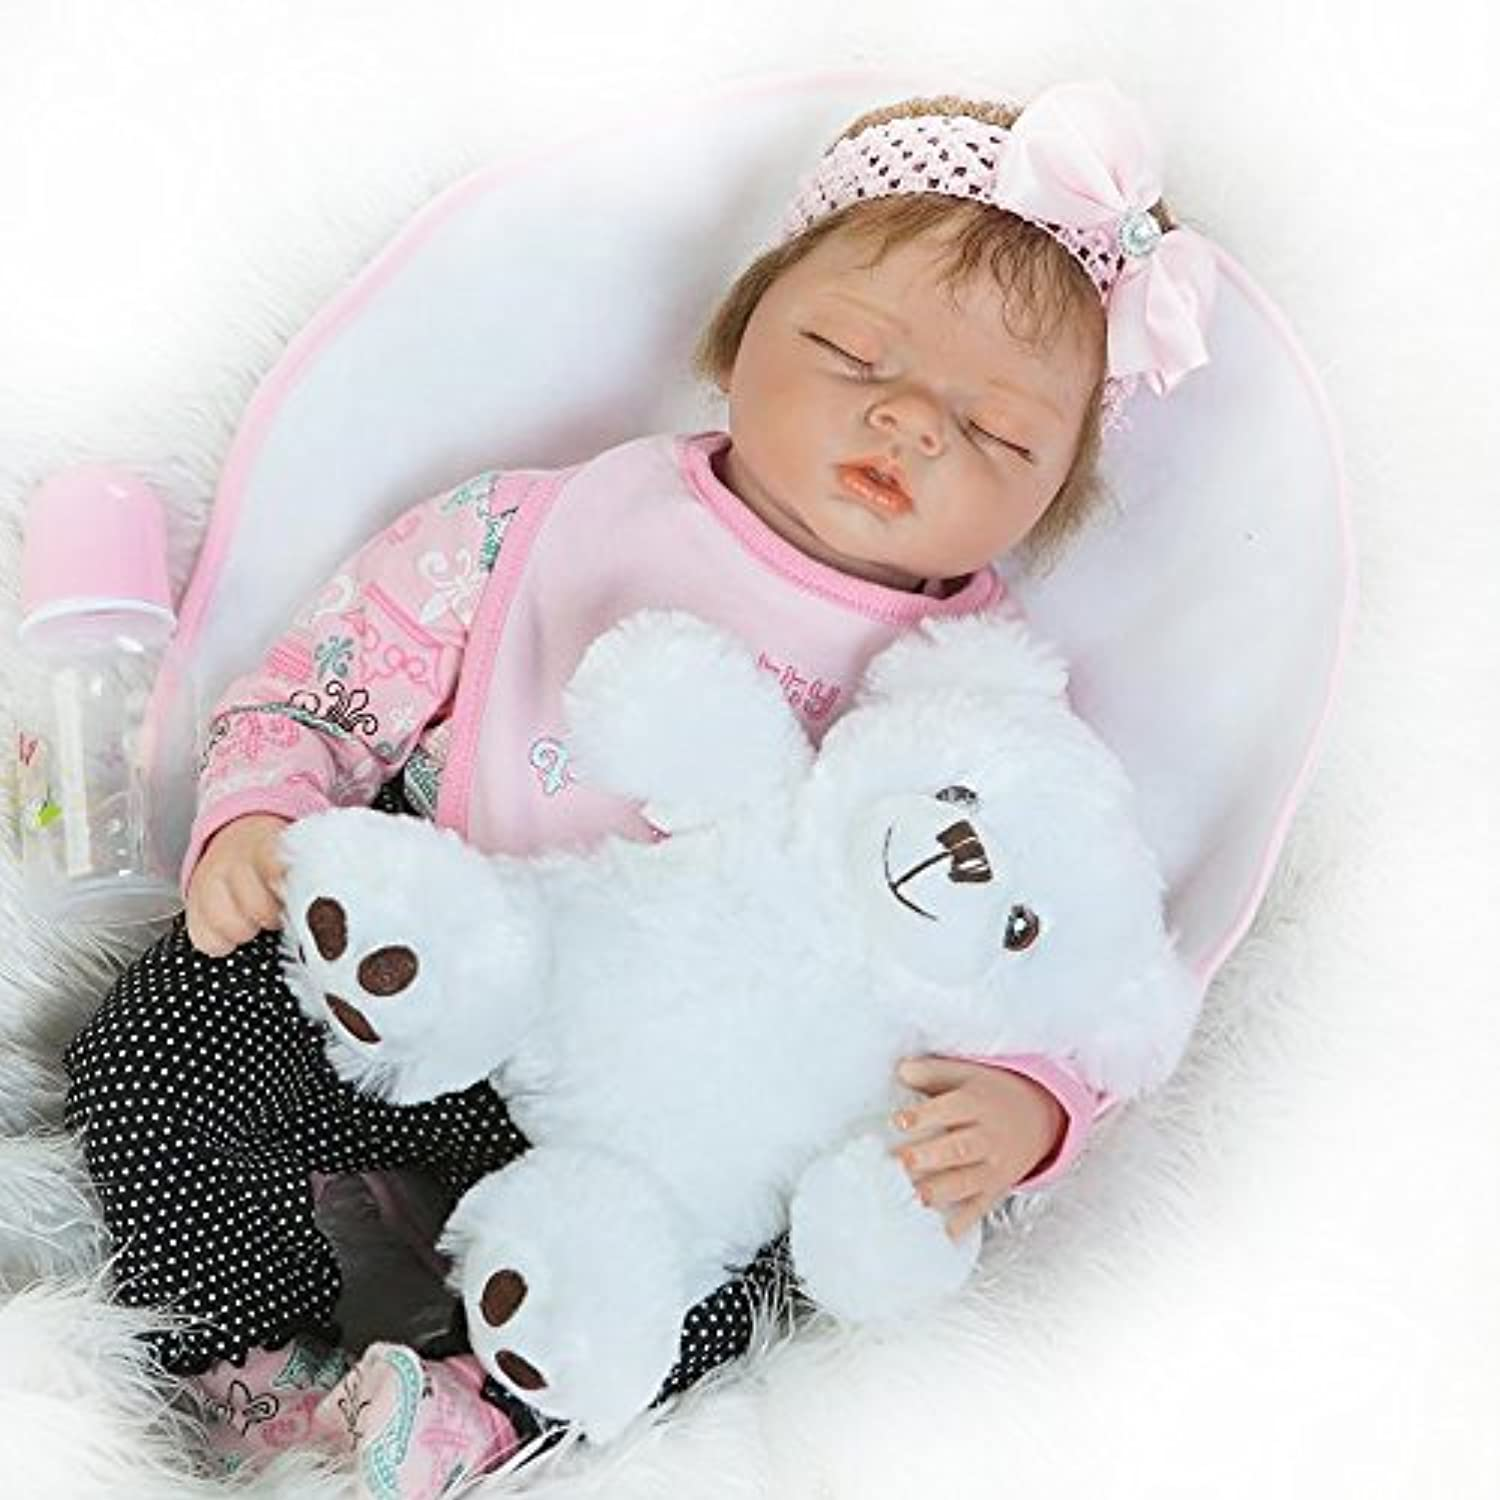 Realistic Reborn Girls Real Looking Lifelikeベビー人形55 cm Sleeping Toys Gift for Toddlers